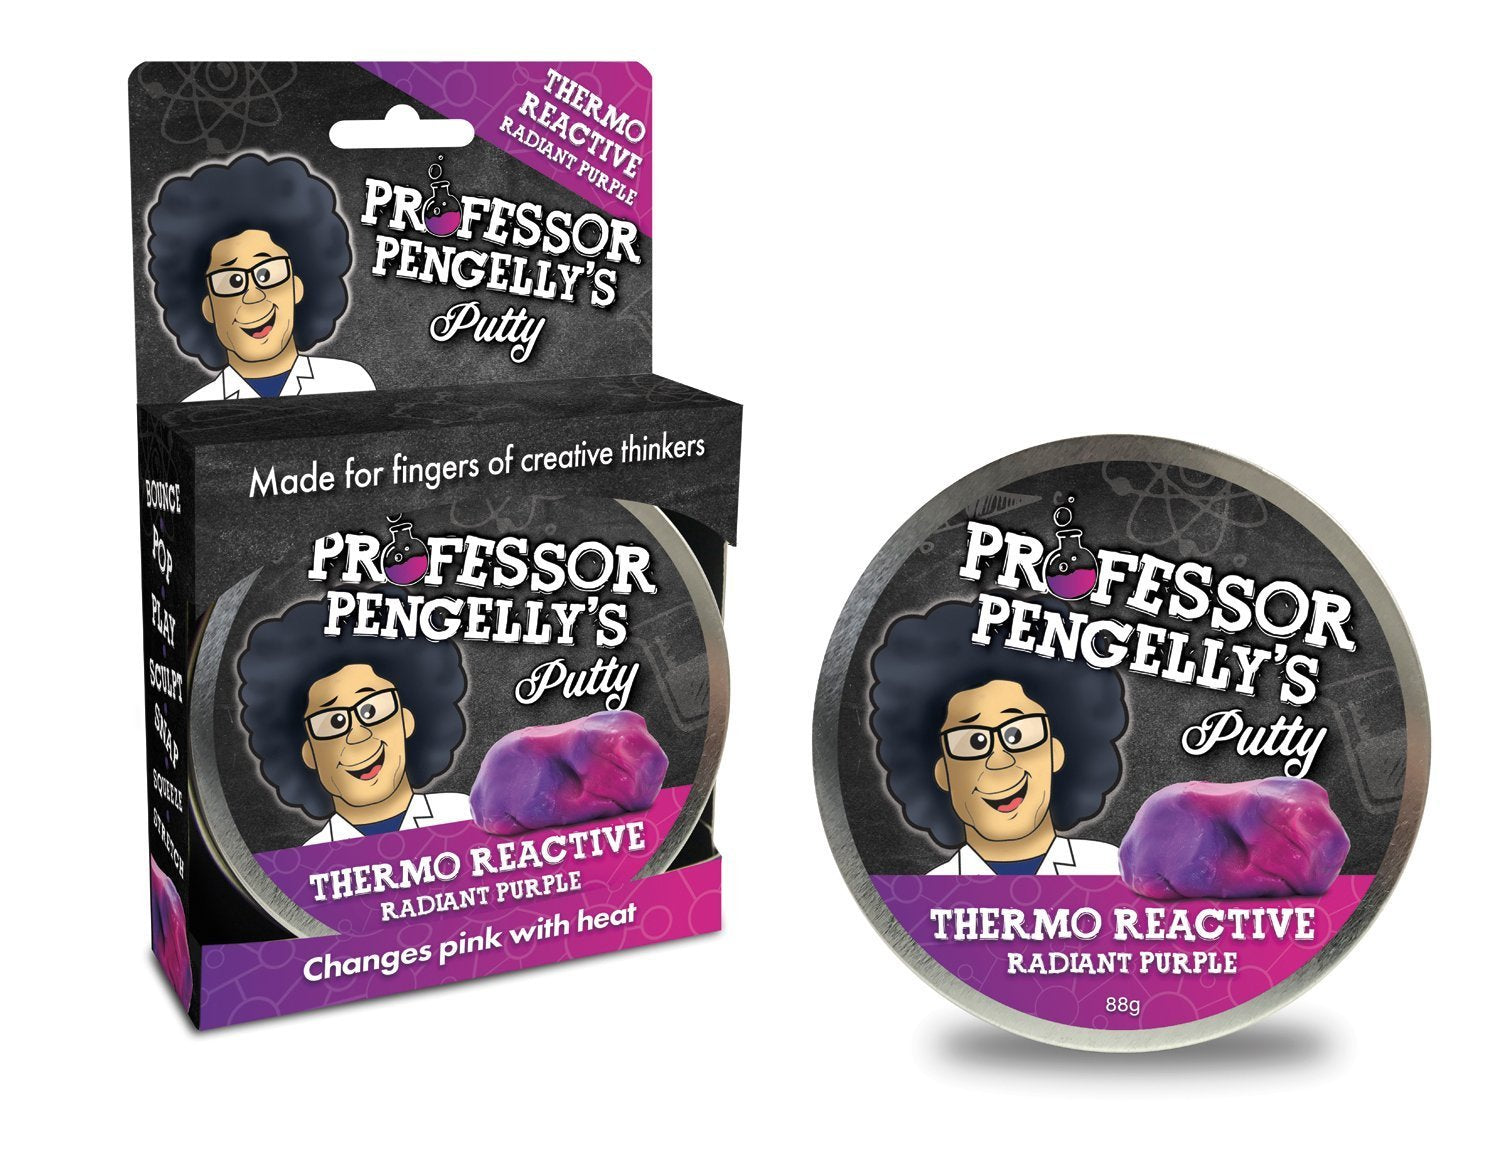 Professor Pengelly's Thermo Reactive Putty - Radiant Purple